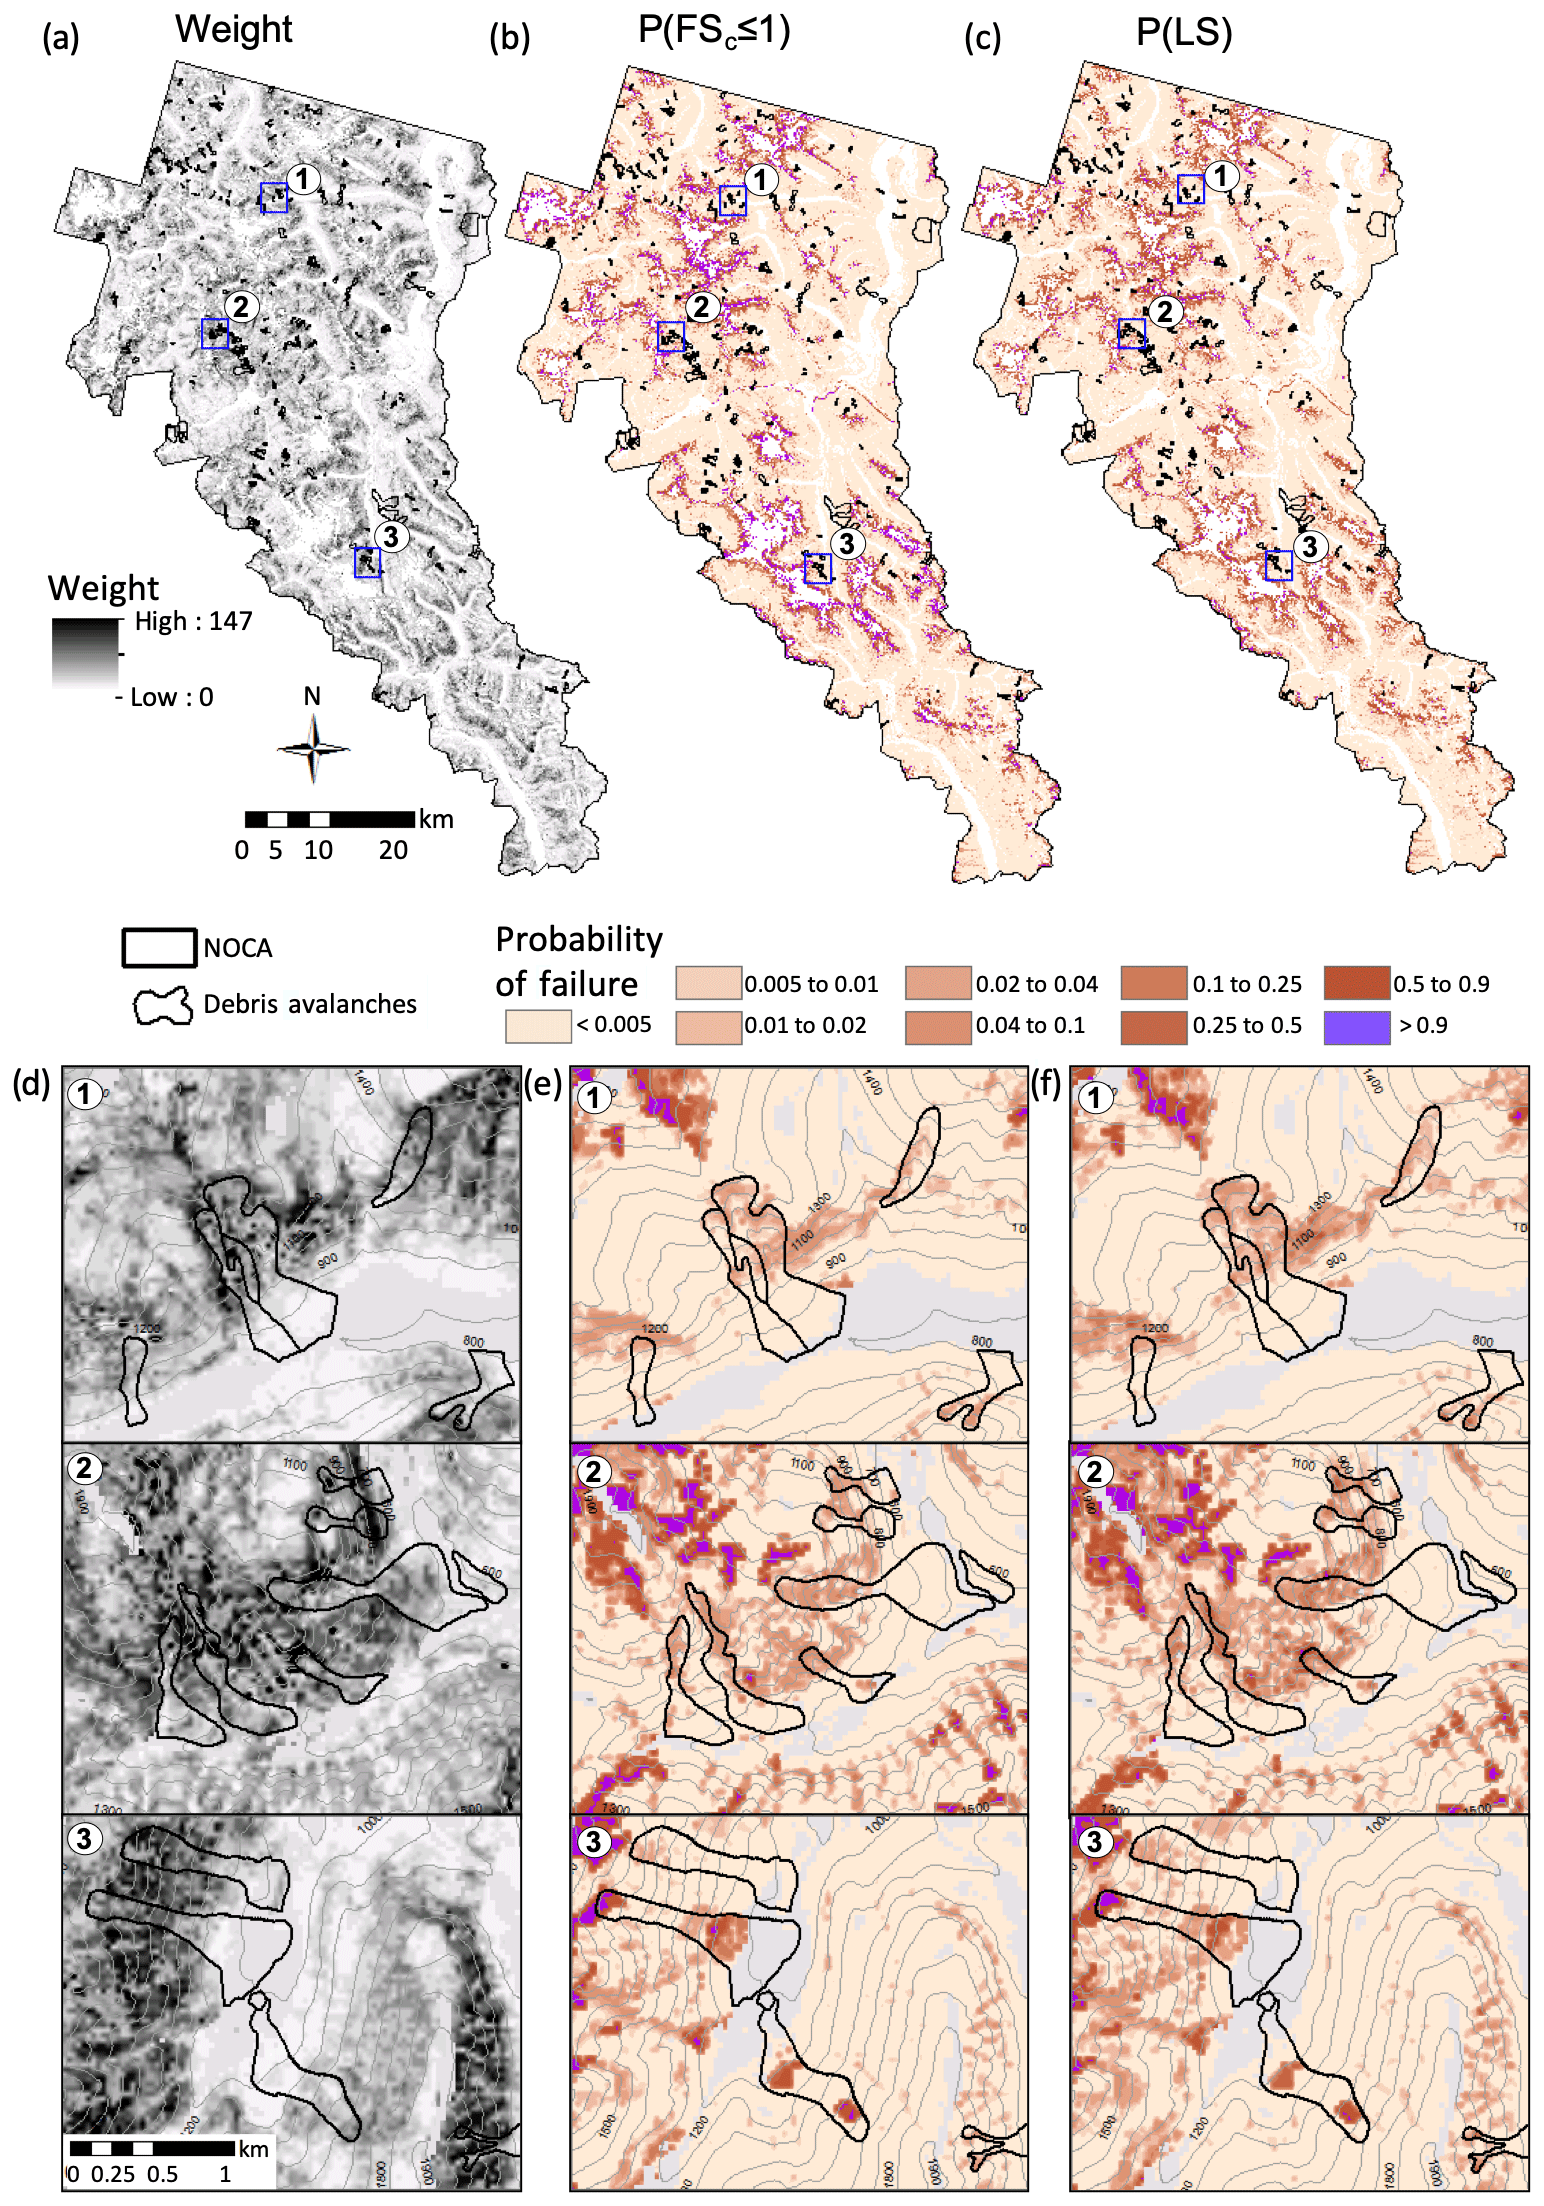 NHESS - A new approach to mapping landslide hazards: a